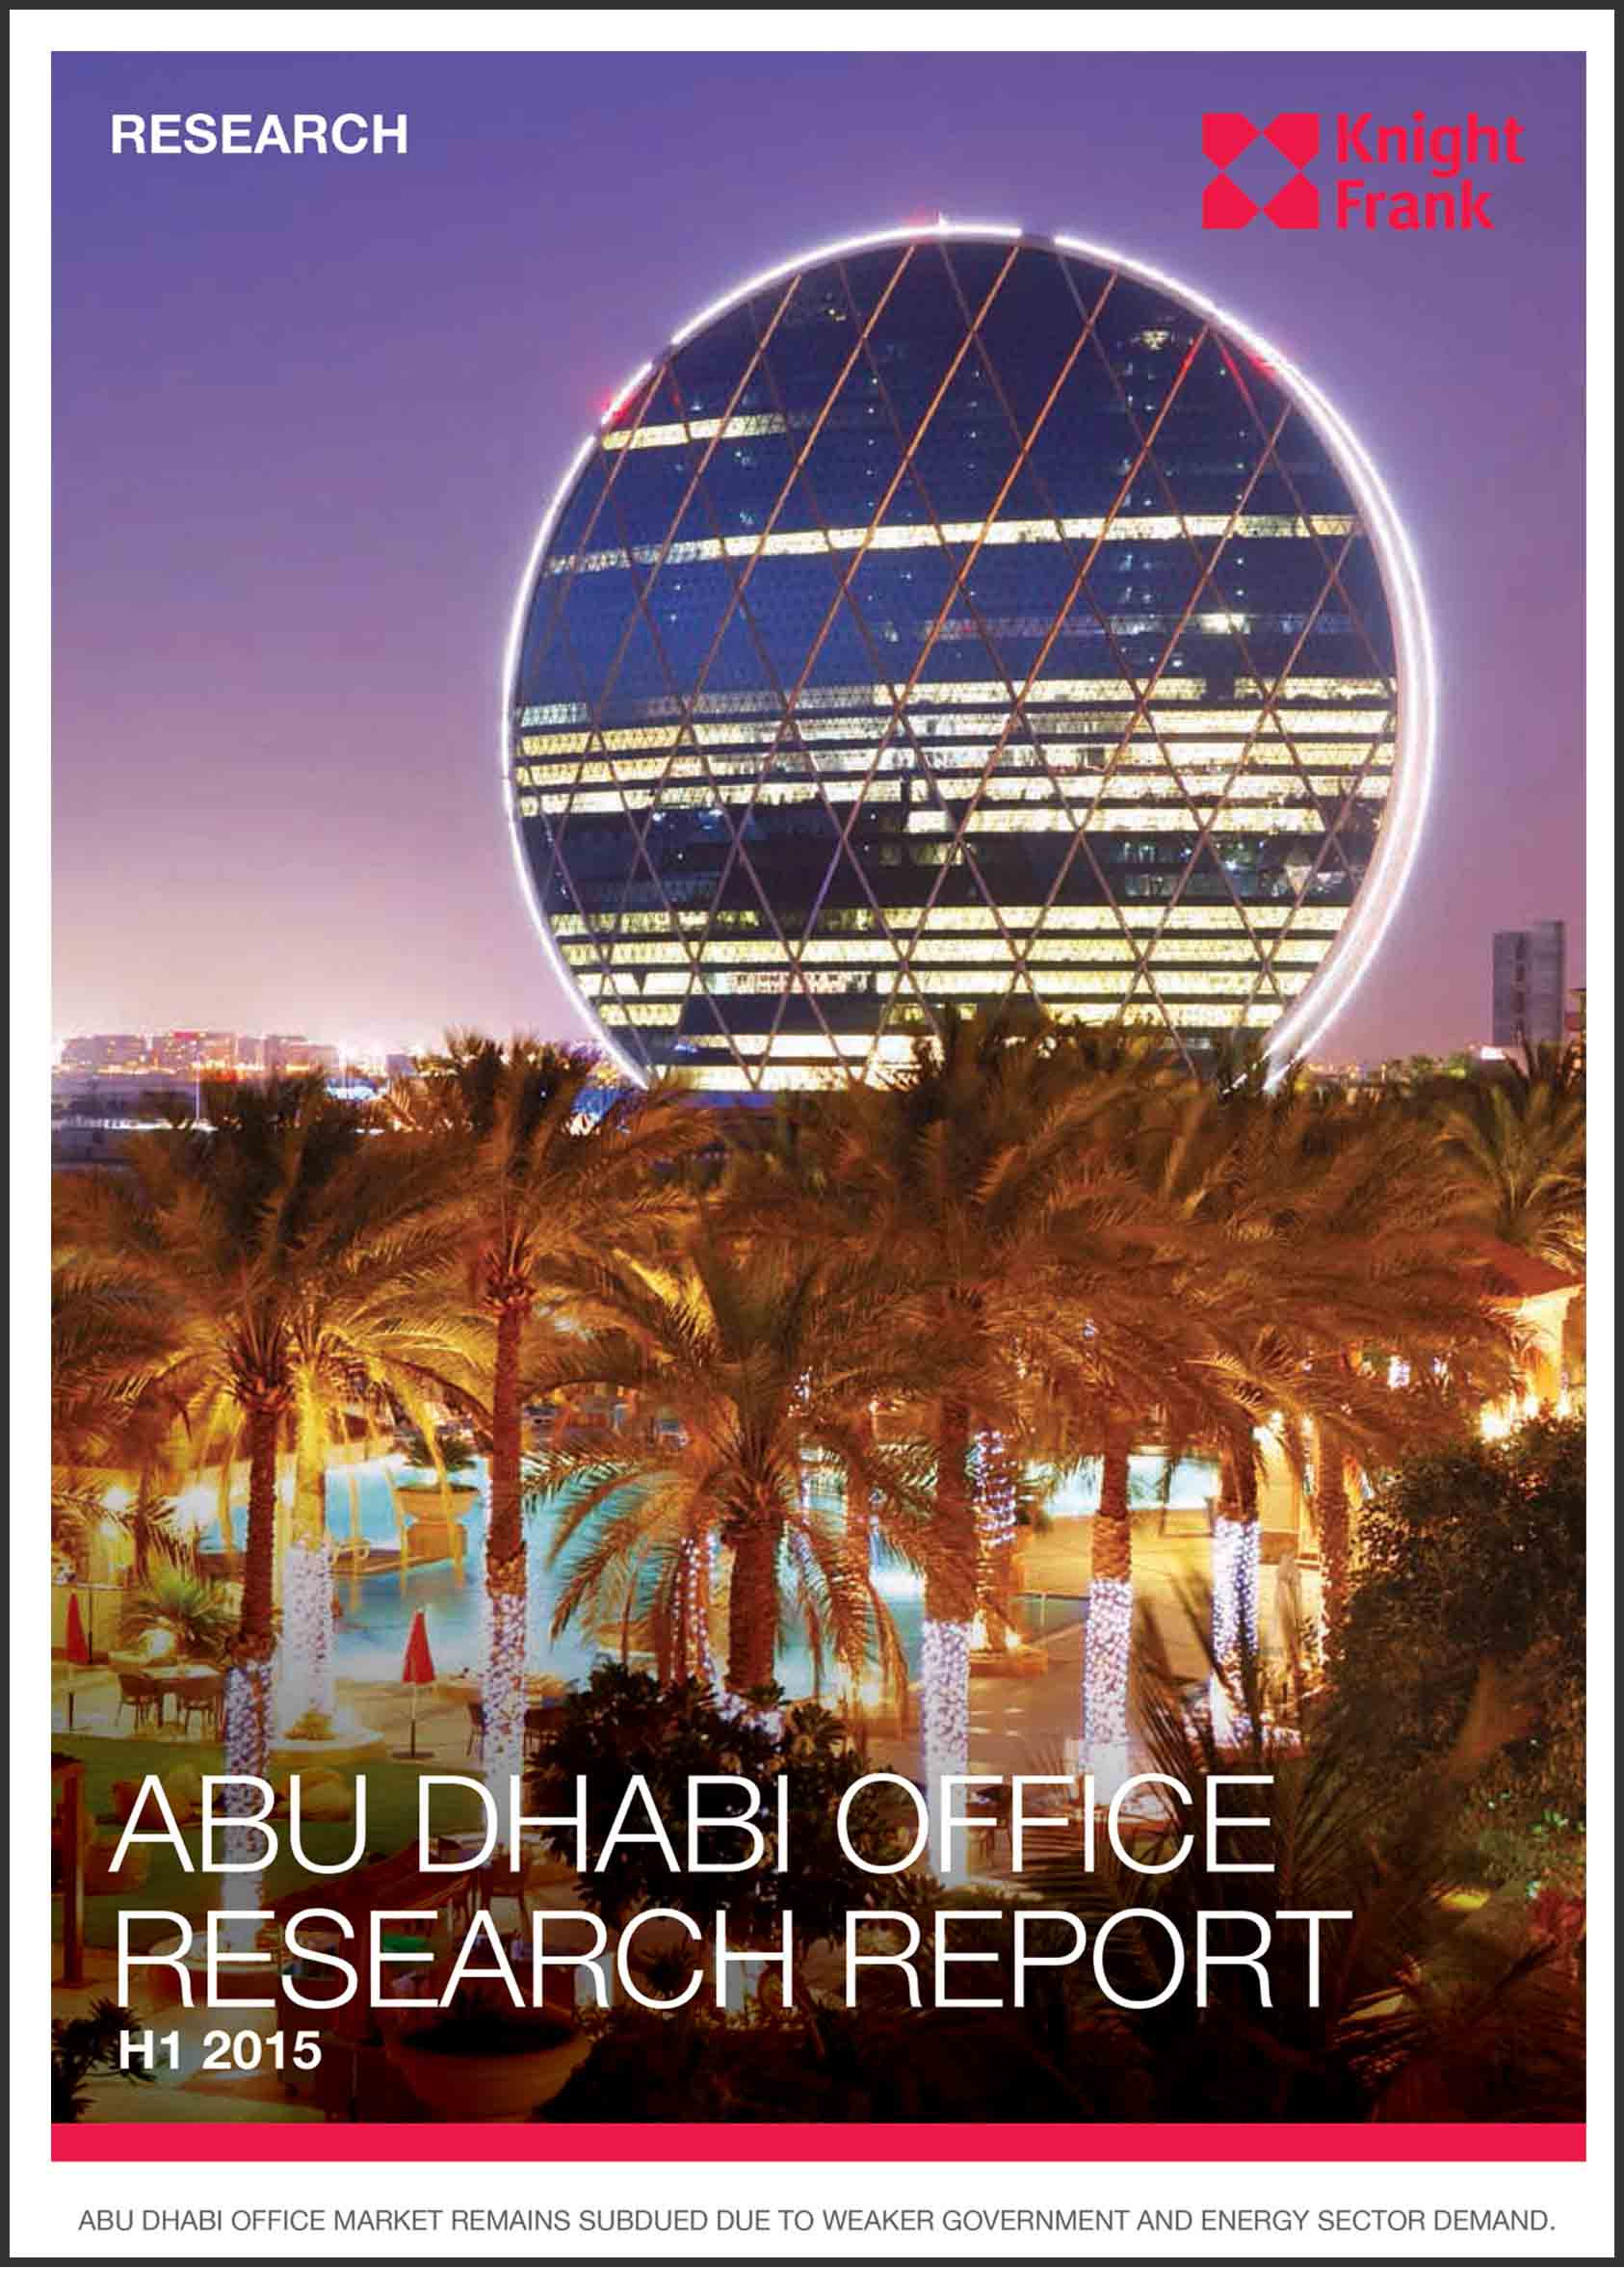 Abu Dhabi Research Report H1 2015